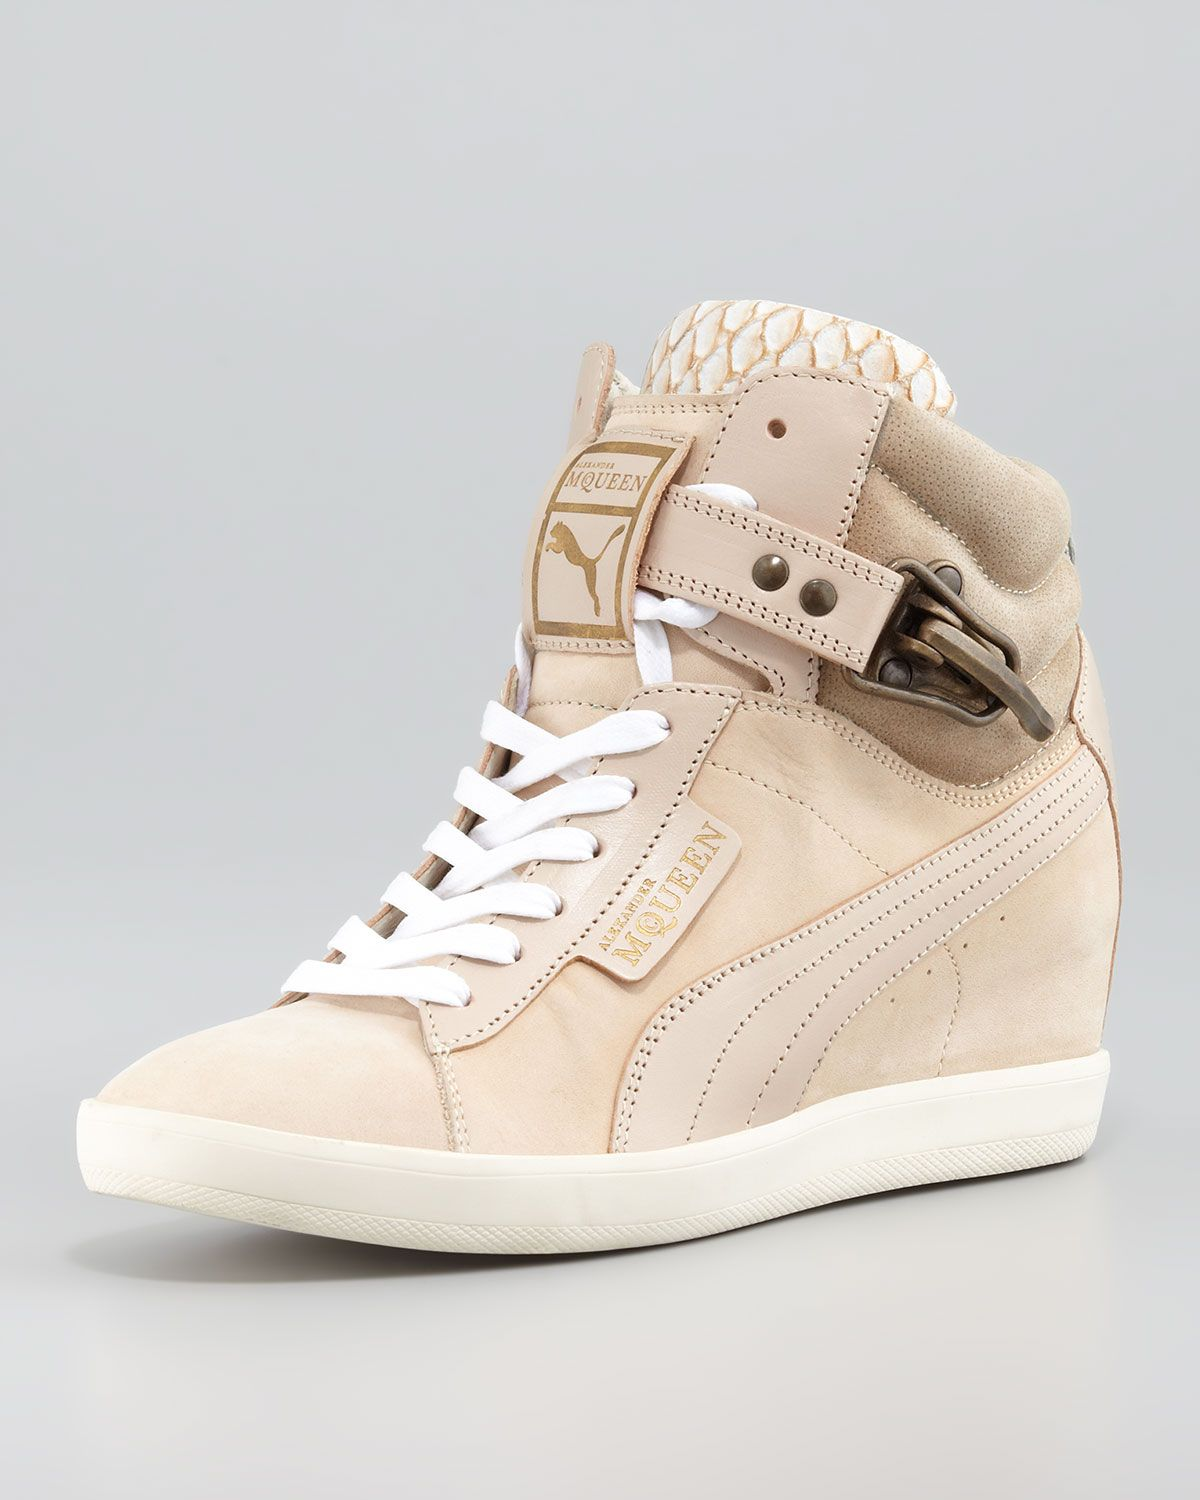 PUMA wedge sneakers | On The Cusp: For The Chic Geek | Wedge